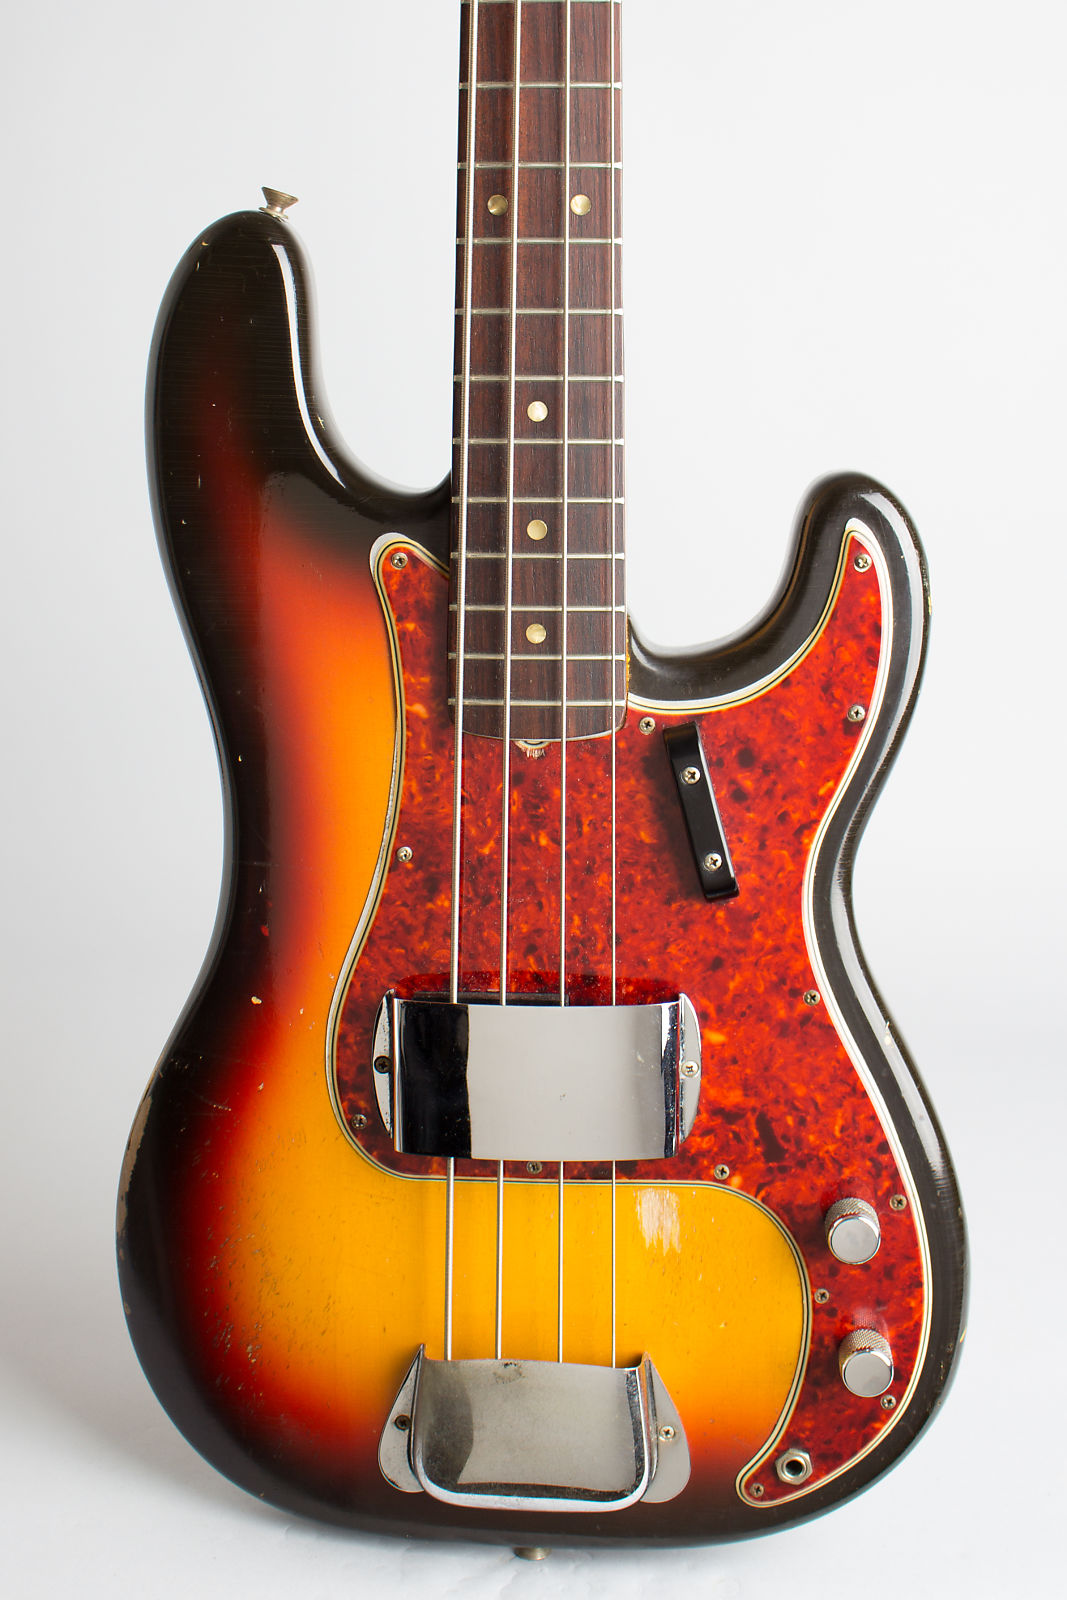 Fender  Precision Bass Solid Body Electric Bass Guitar (1966), ser. #141012, original black tolex hard shell case.